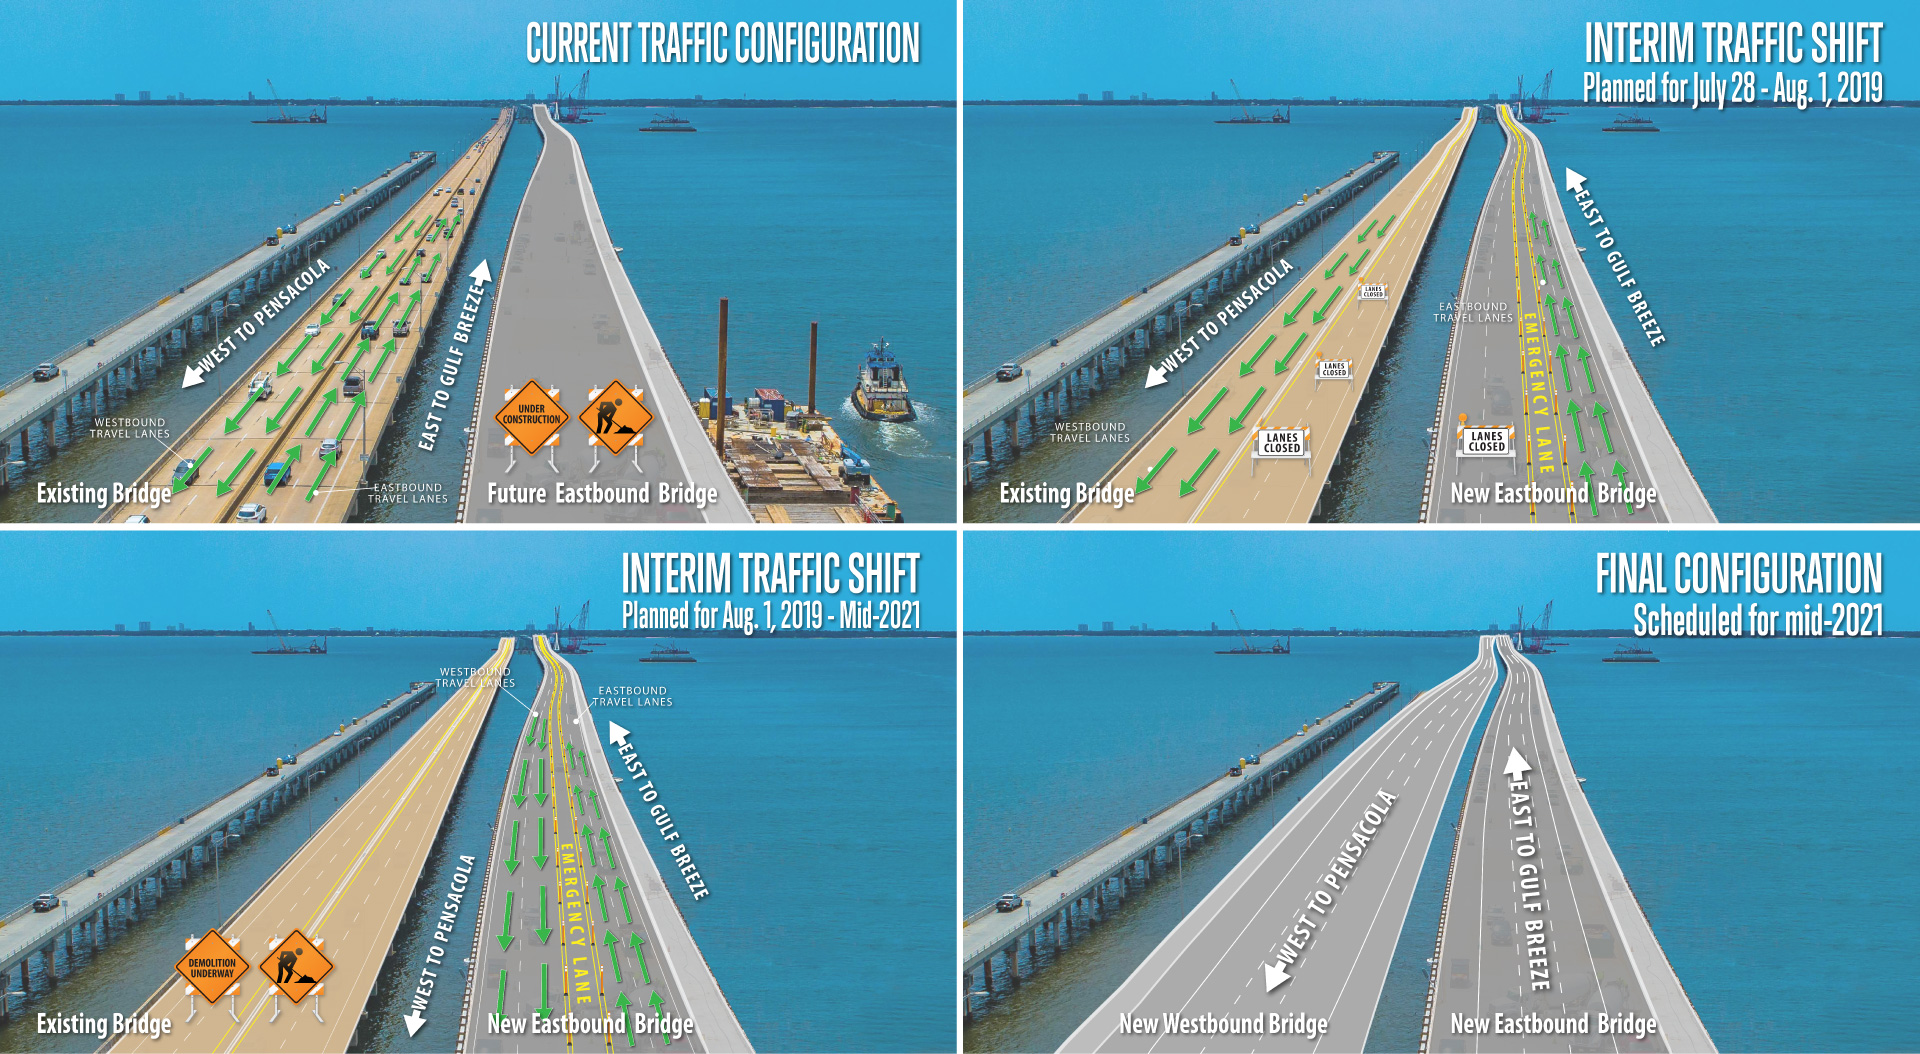 Traffic shift planned for the new Pensacola Bay Bridge